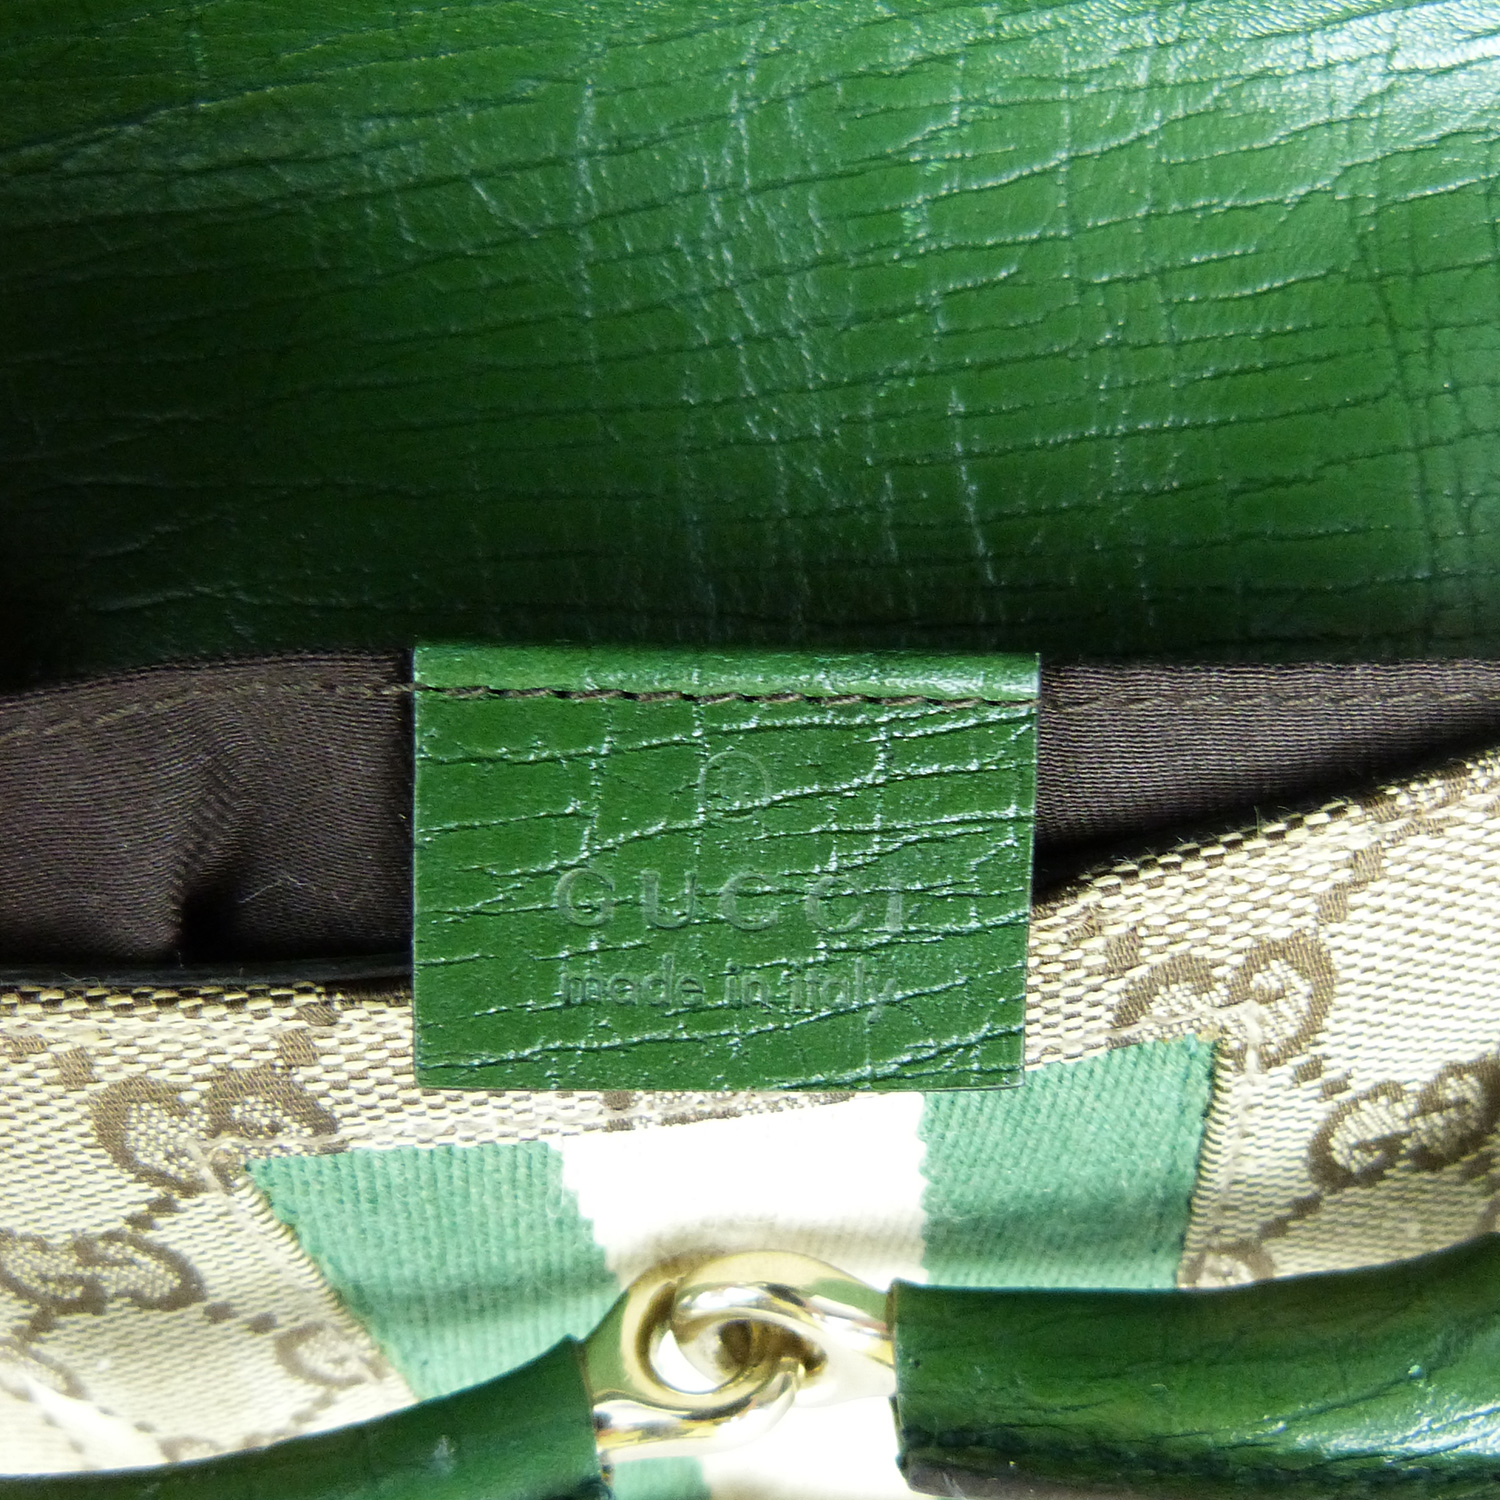 Pochette Gucci Collection Mors Authentique d'occasion Monogram